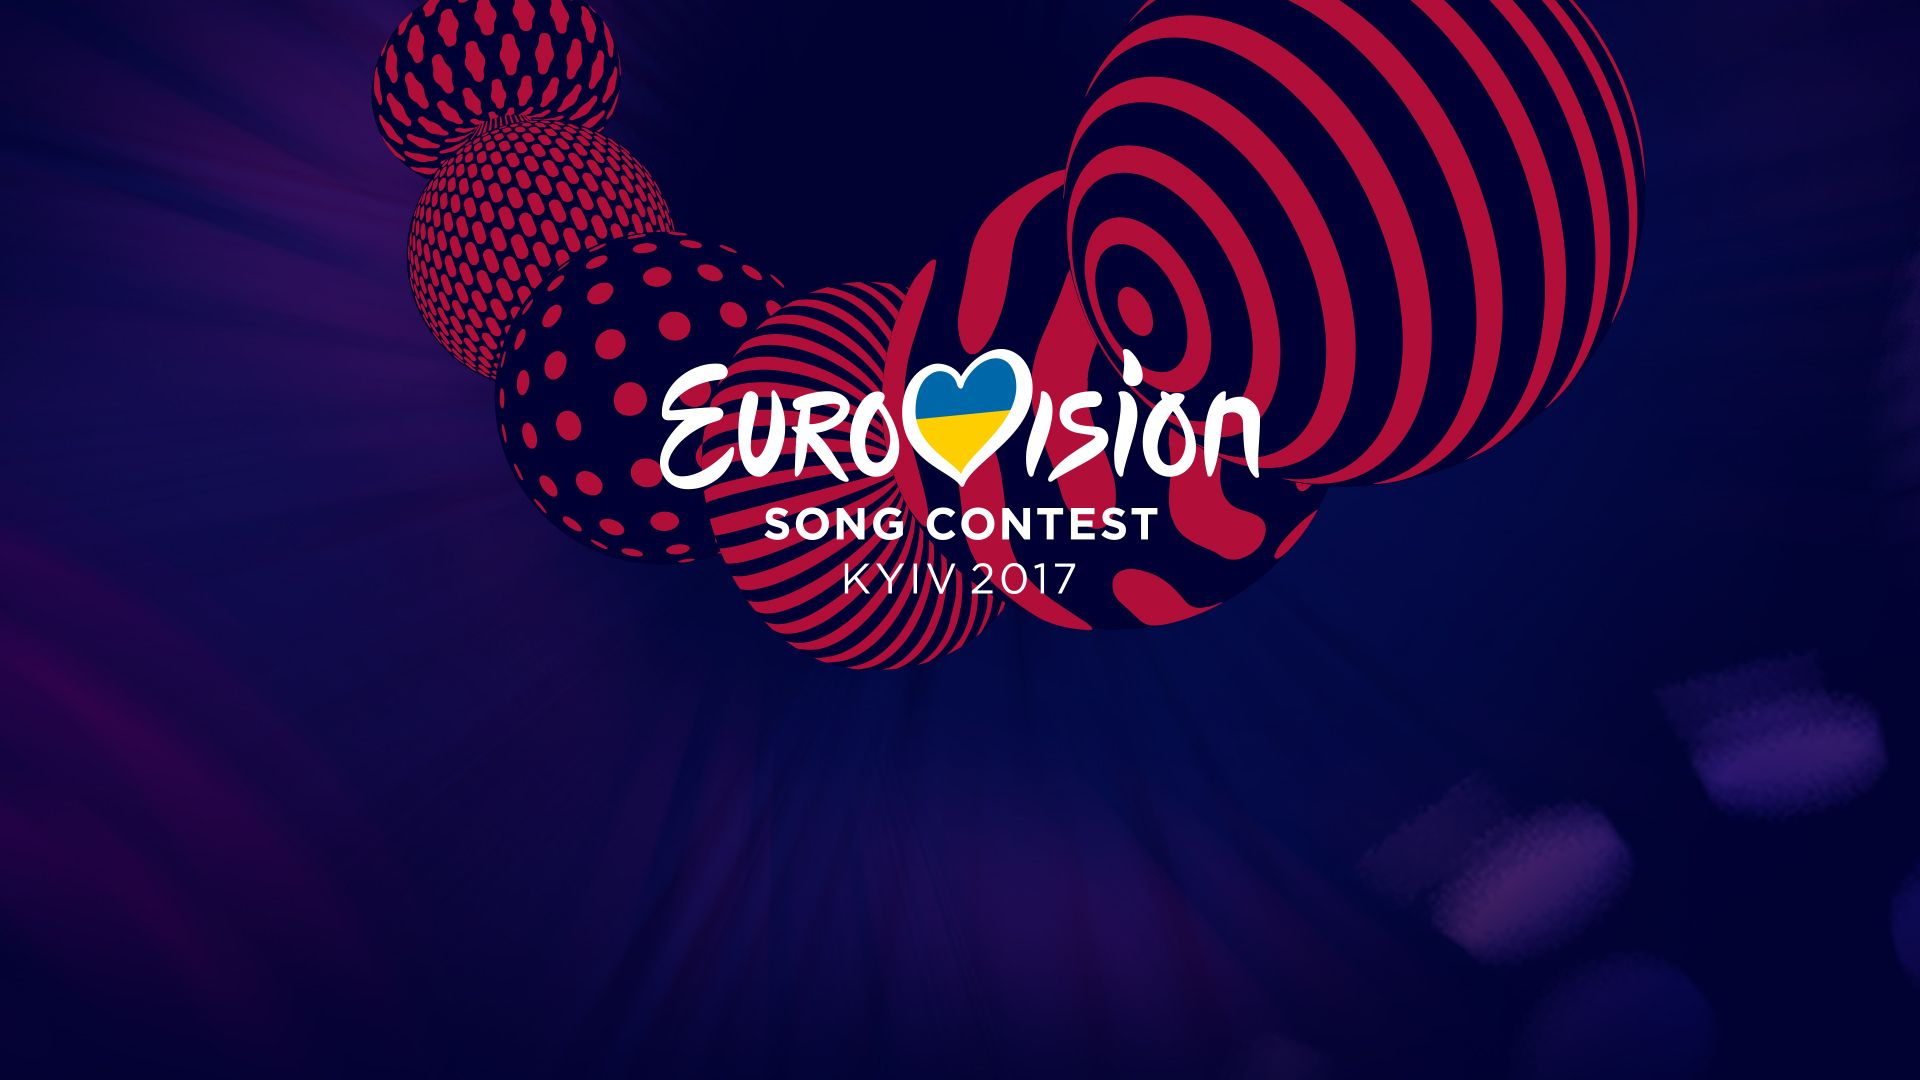 eurovision song contest 2019 online